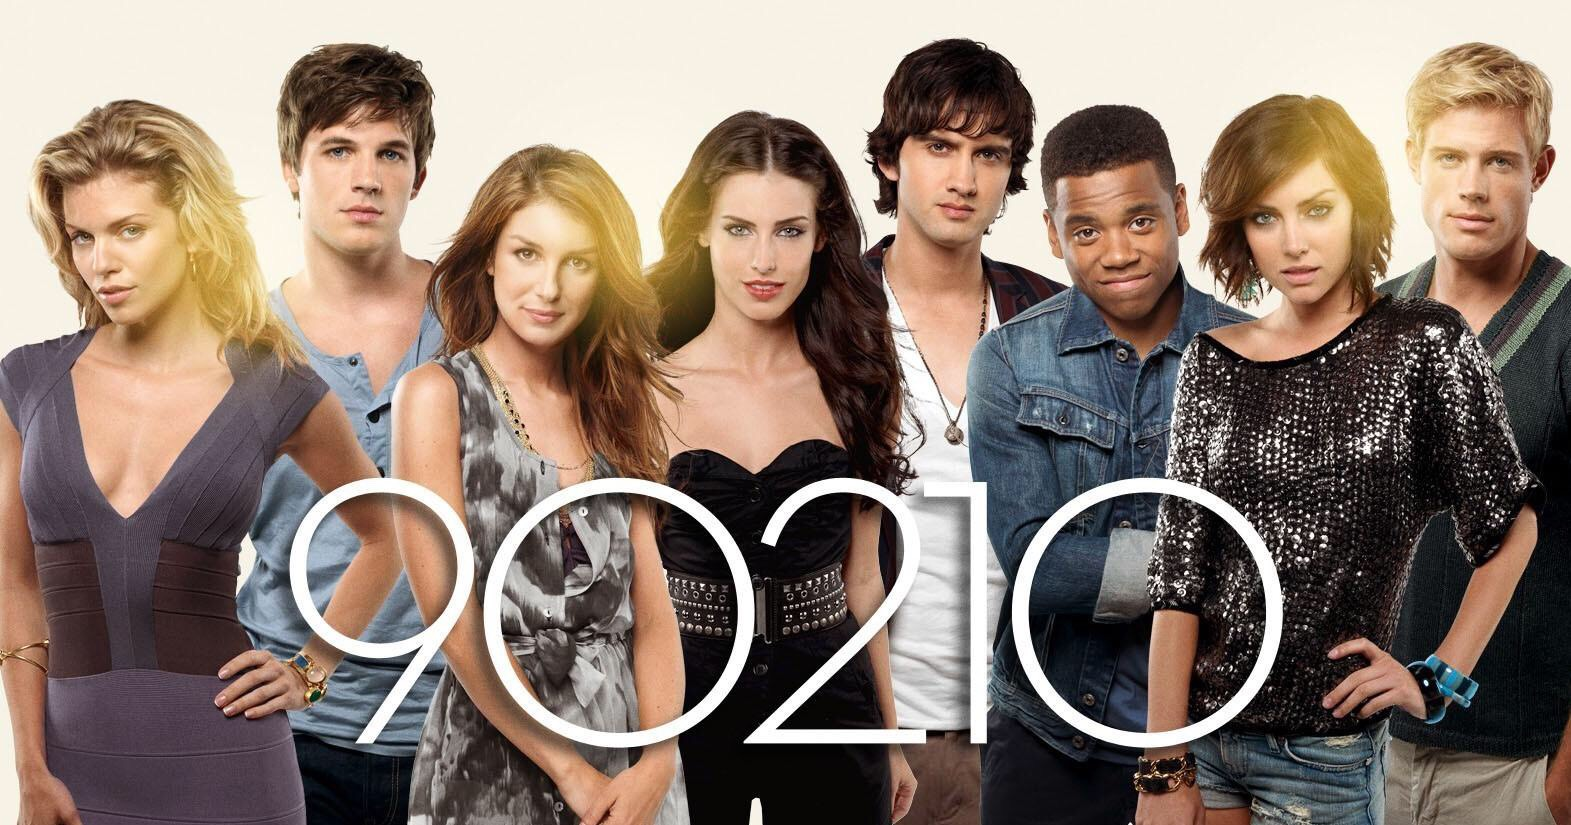 90210. I haven't seen the older version but the newer one is amazing